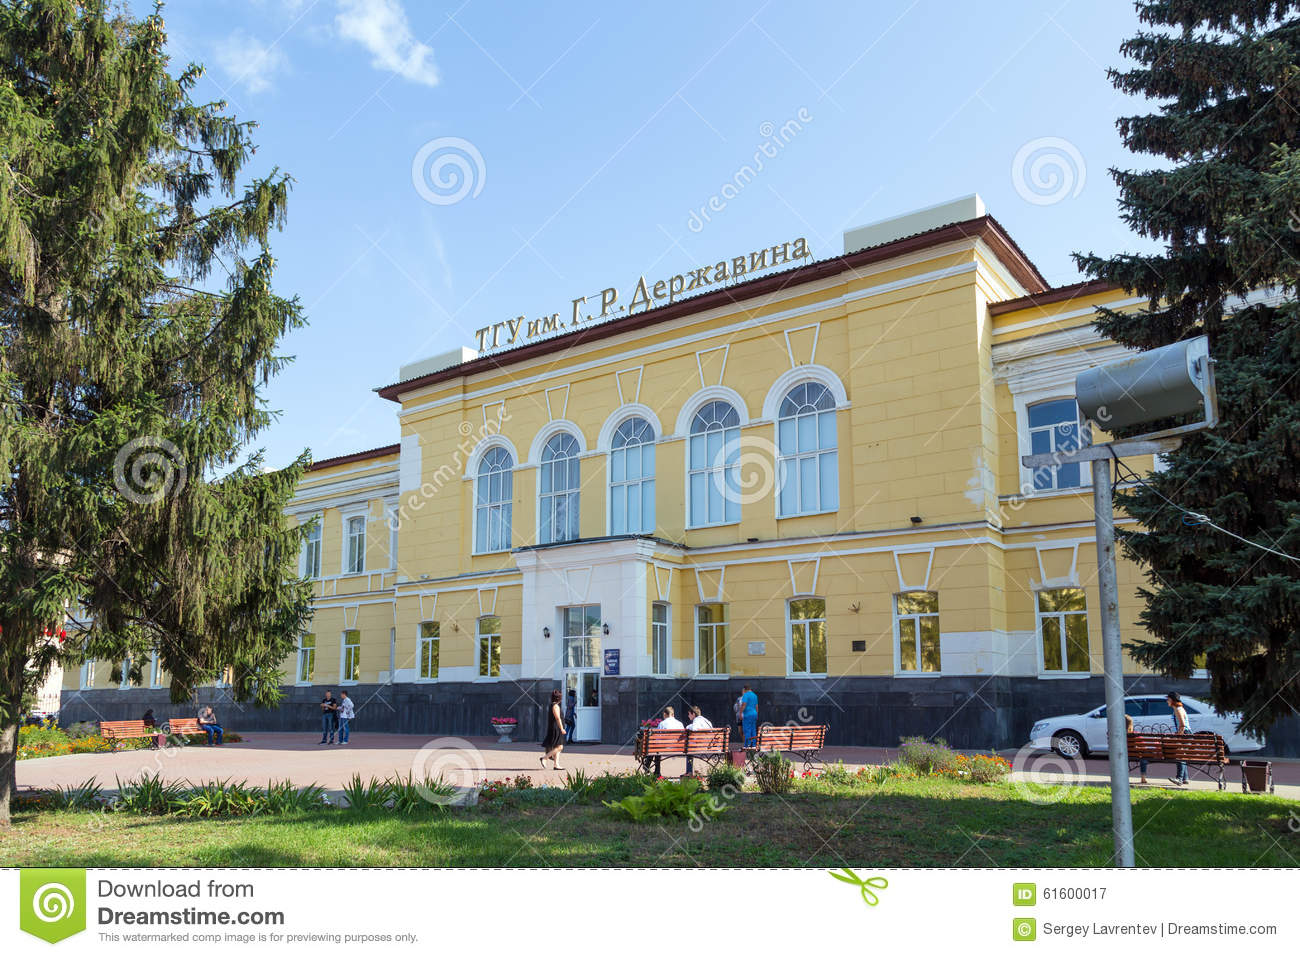 Tambov Technical State University: overview, specialties and reviews 87